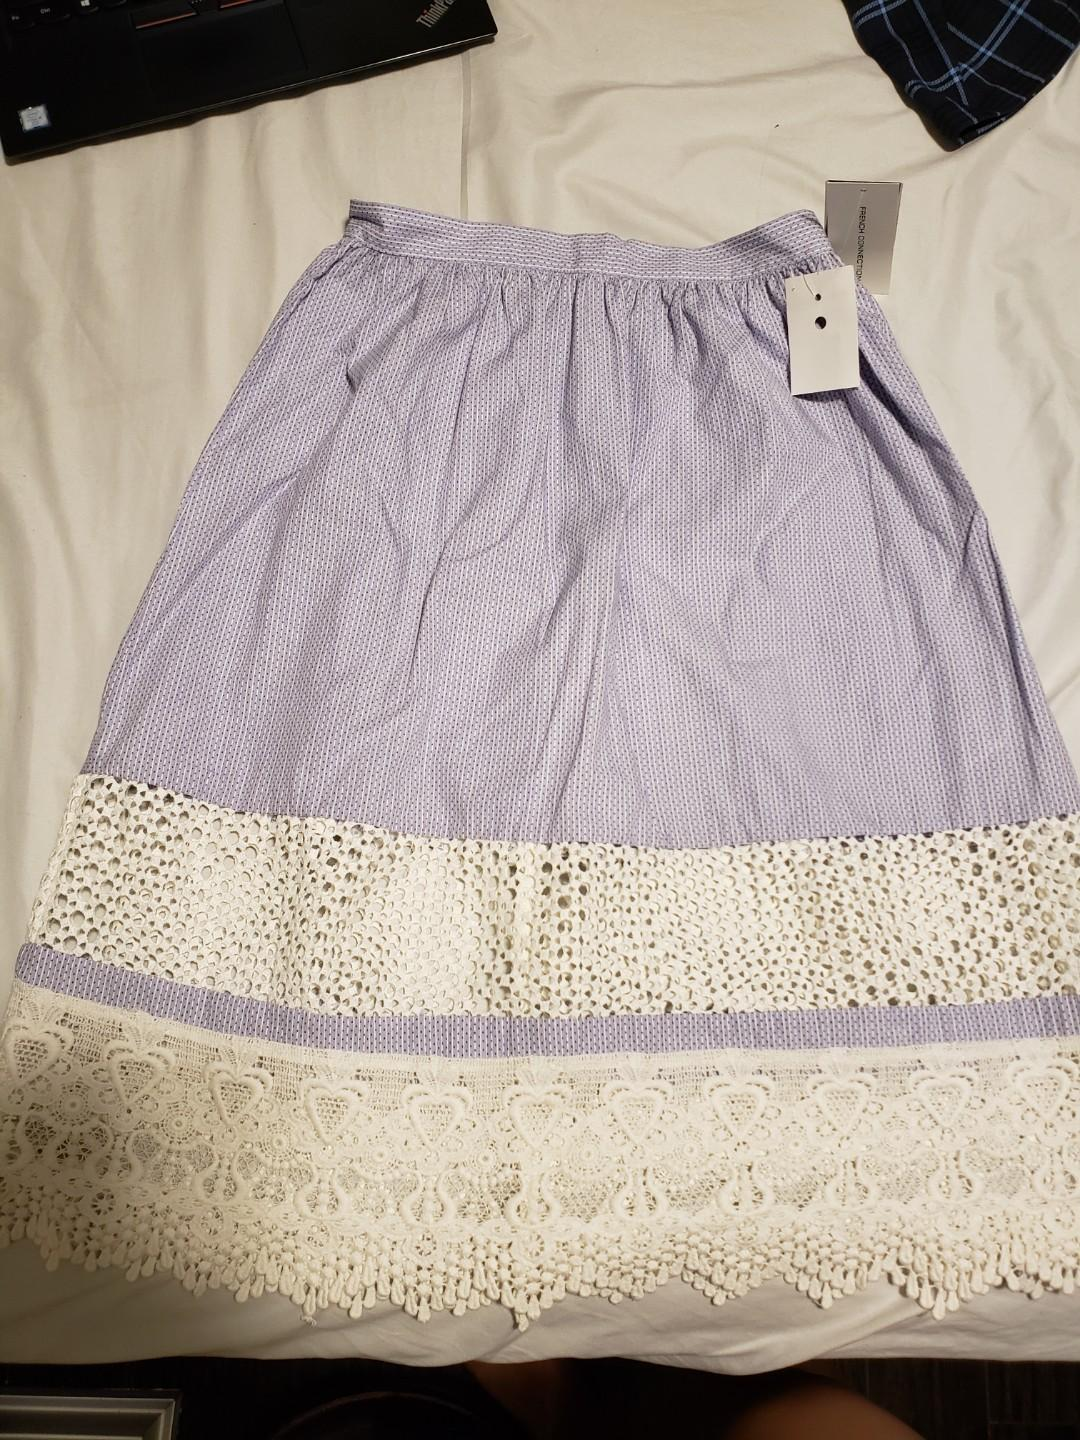 New! Sz 2 French Connection Skirt with crochet detail